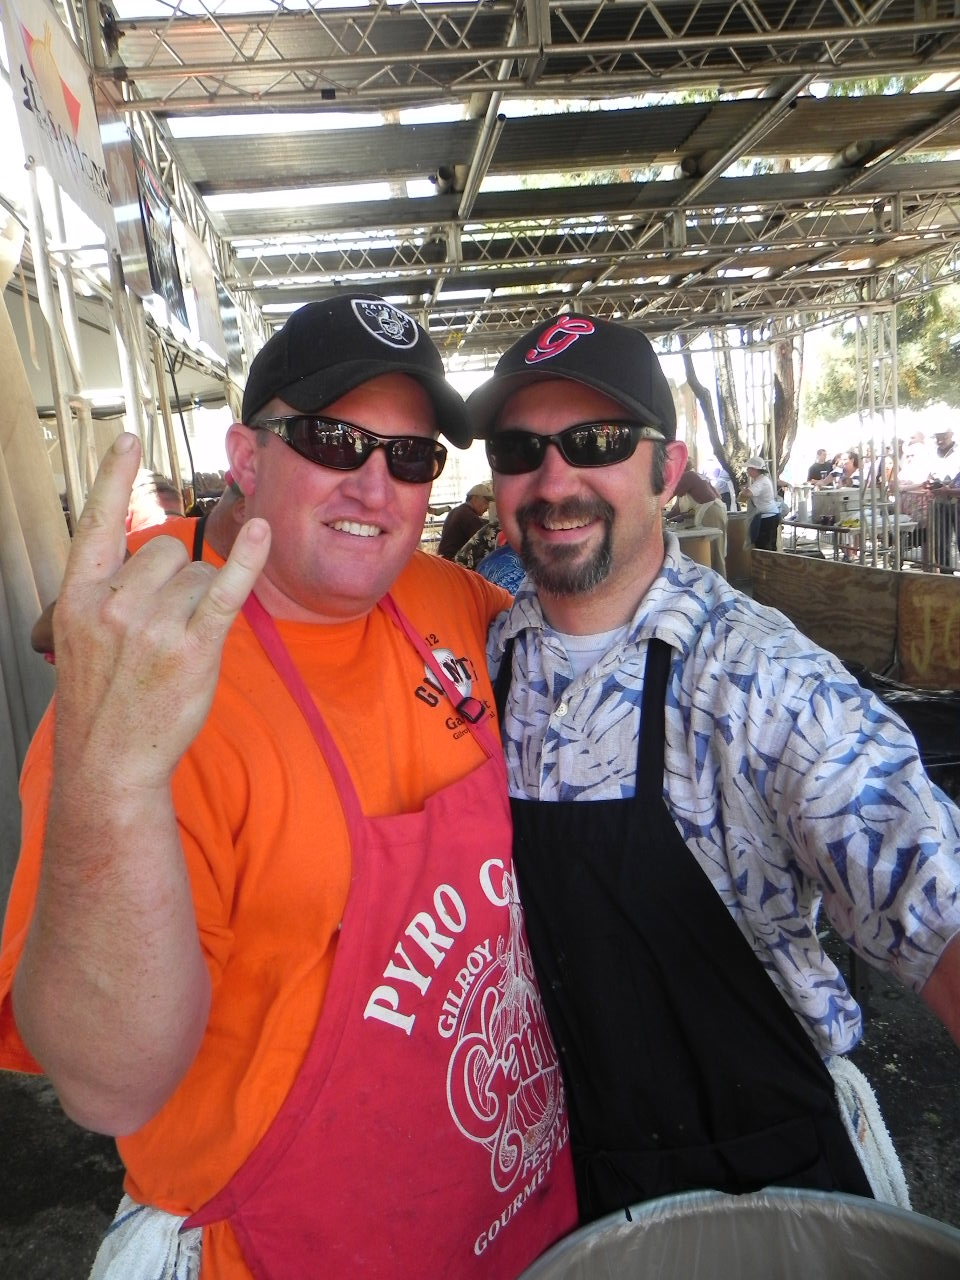 Rich Janisch (left) and Scott Povio (right) of Gilroy have been volunteering at the festival for years. Neither are professional chefs. They just love to cook, especially with garlic. Photo: Gina Scialabba